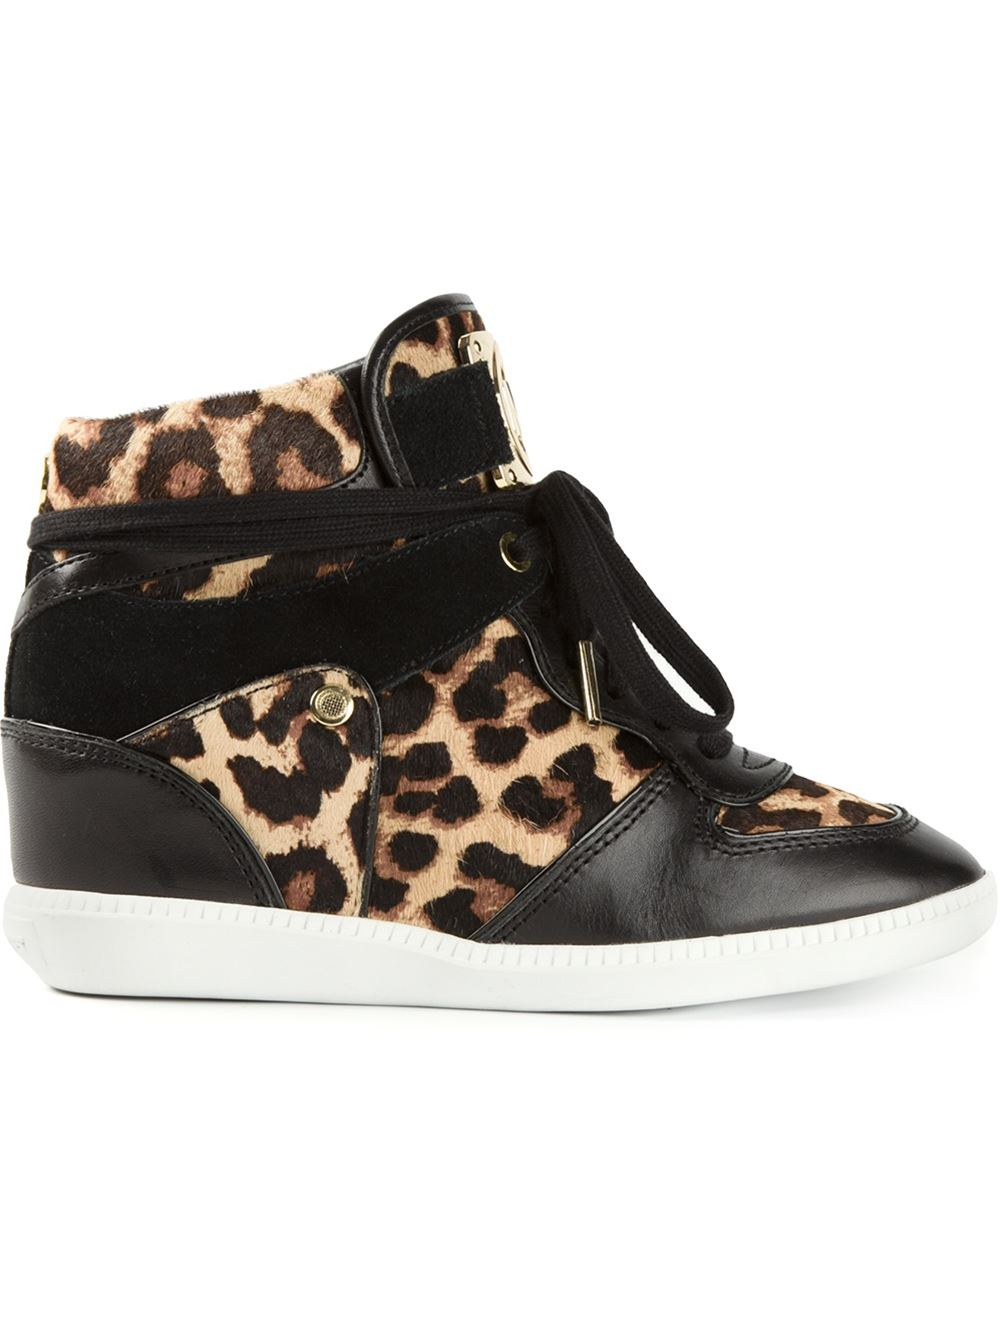 lyst michael michael kors leopard print concealed wedge sneakers in black. Black Bedroom Furniture Sets. Home Design Ideas